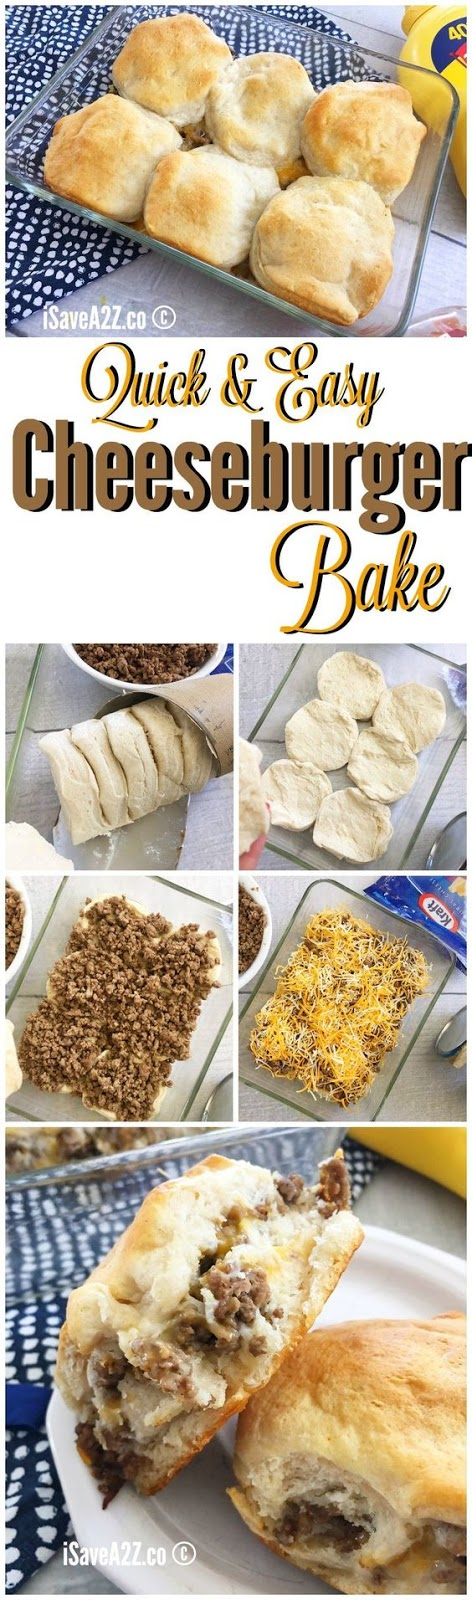 Quick and Easy Cheeseburger Bake Casserole Recipe #Quick #Easy #Cheeseburger #Bake #Casserole   #DESSERTS #HEALTHYFOOD #EASY_RECIPES #DINNER #LAUCH #DELICIOUS #EASY #HOLIDAYS #RECIPE #SPECIAL_DIET #WORLD_CUISINE #CAKE #GRILL #APPETIZERS #HEALTHY_RECIPES #DRINKS #COOKING_METHOD #ITALIAN_RECIPES #MEAT #VEGAN_RECIPES #COOKIES #PASTA #FRUIT #SALAD #SOUP_APPETIZERS #NON_ALCOHOLIC_DRINKS #MEAL_PLANNING #VEGETABLES #SOUP #PASTRY #CHOCOLATE #DAIRY #ALCOHOLIC_DRINKS #BULGUR_SALAD #BAKING #SNACKS #BEEF_RECIPES #MEAT_APPETIZERS #MEXICAN_RECIPES #BREAD #ASIAN_RECIPES #SEAFOOD_APPETIZERS #MUFFINS #BREAKFAST_AND_BRUNCH #CONDIMENTS #CUPCAKES #CHEESE #CHICKEN_RECIPES #PIE #COFFEE #NO_BAKE_DESSERTS #HEALTHY_SNACKS #SEAFOOD #GRAIN #LUNCHES_DINNERS #MEXICAN #QUICK_BREAD #LIQUOR